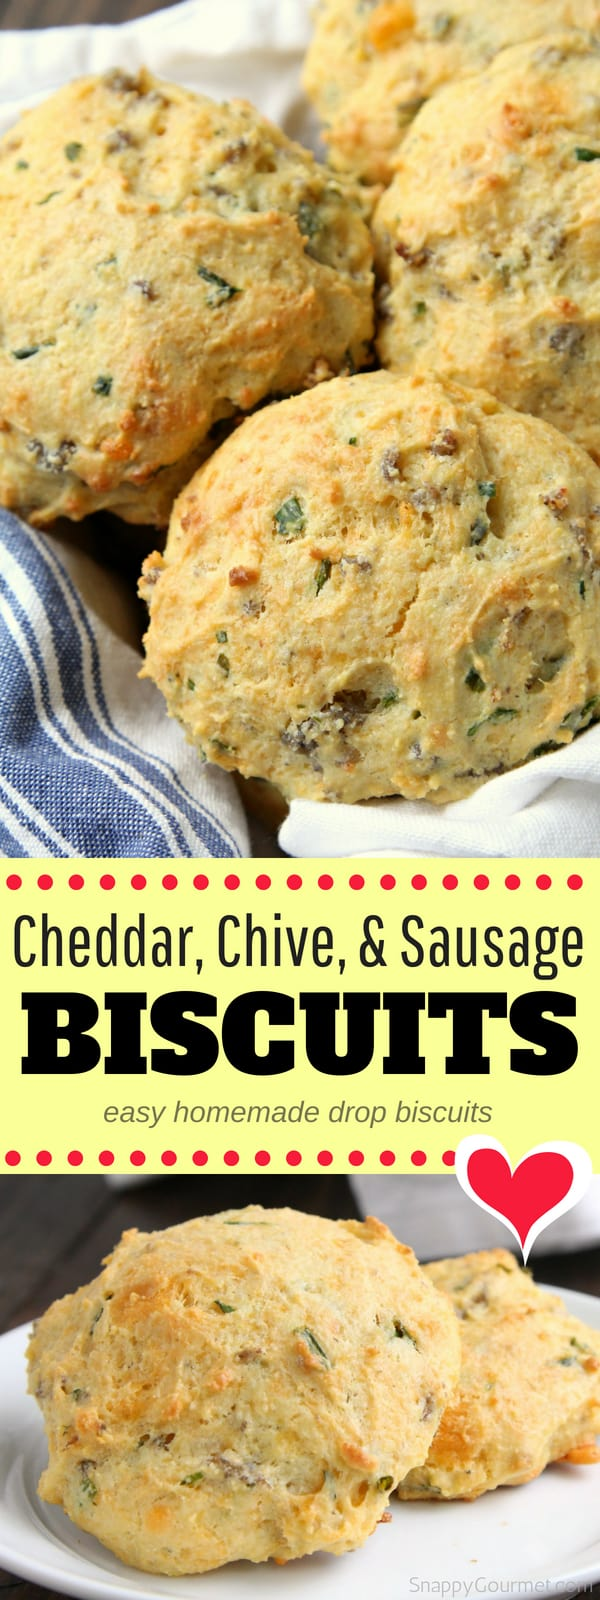 Homemade Cheddar, Chive, and Sausage Biscuits, simple biscuit recipe for easy drop biscuits. So delicious and loaded with breakfast sausage, shredded cheddar cheese, and chives. These quick biscuits from scratch are great for a hearty breakfast or brunch!